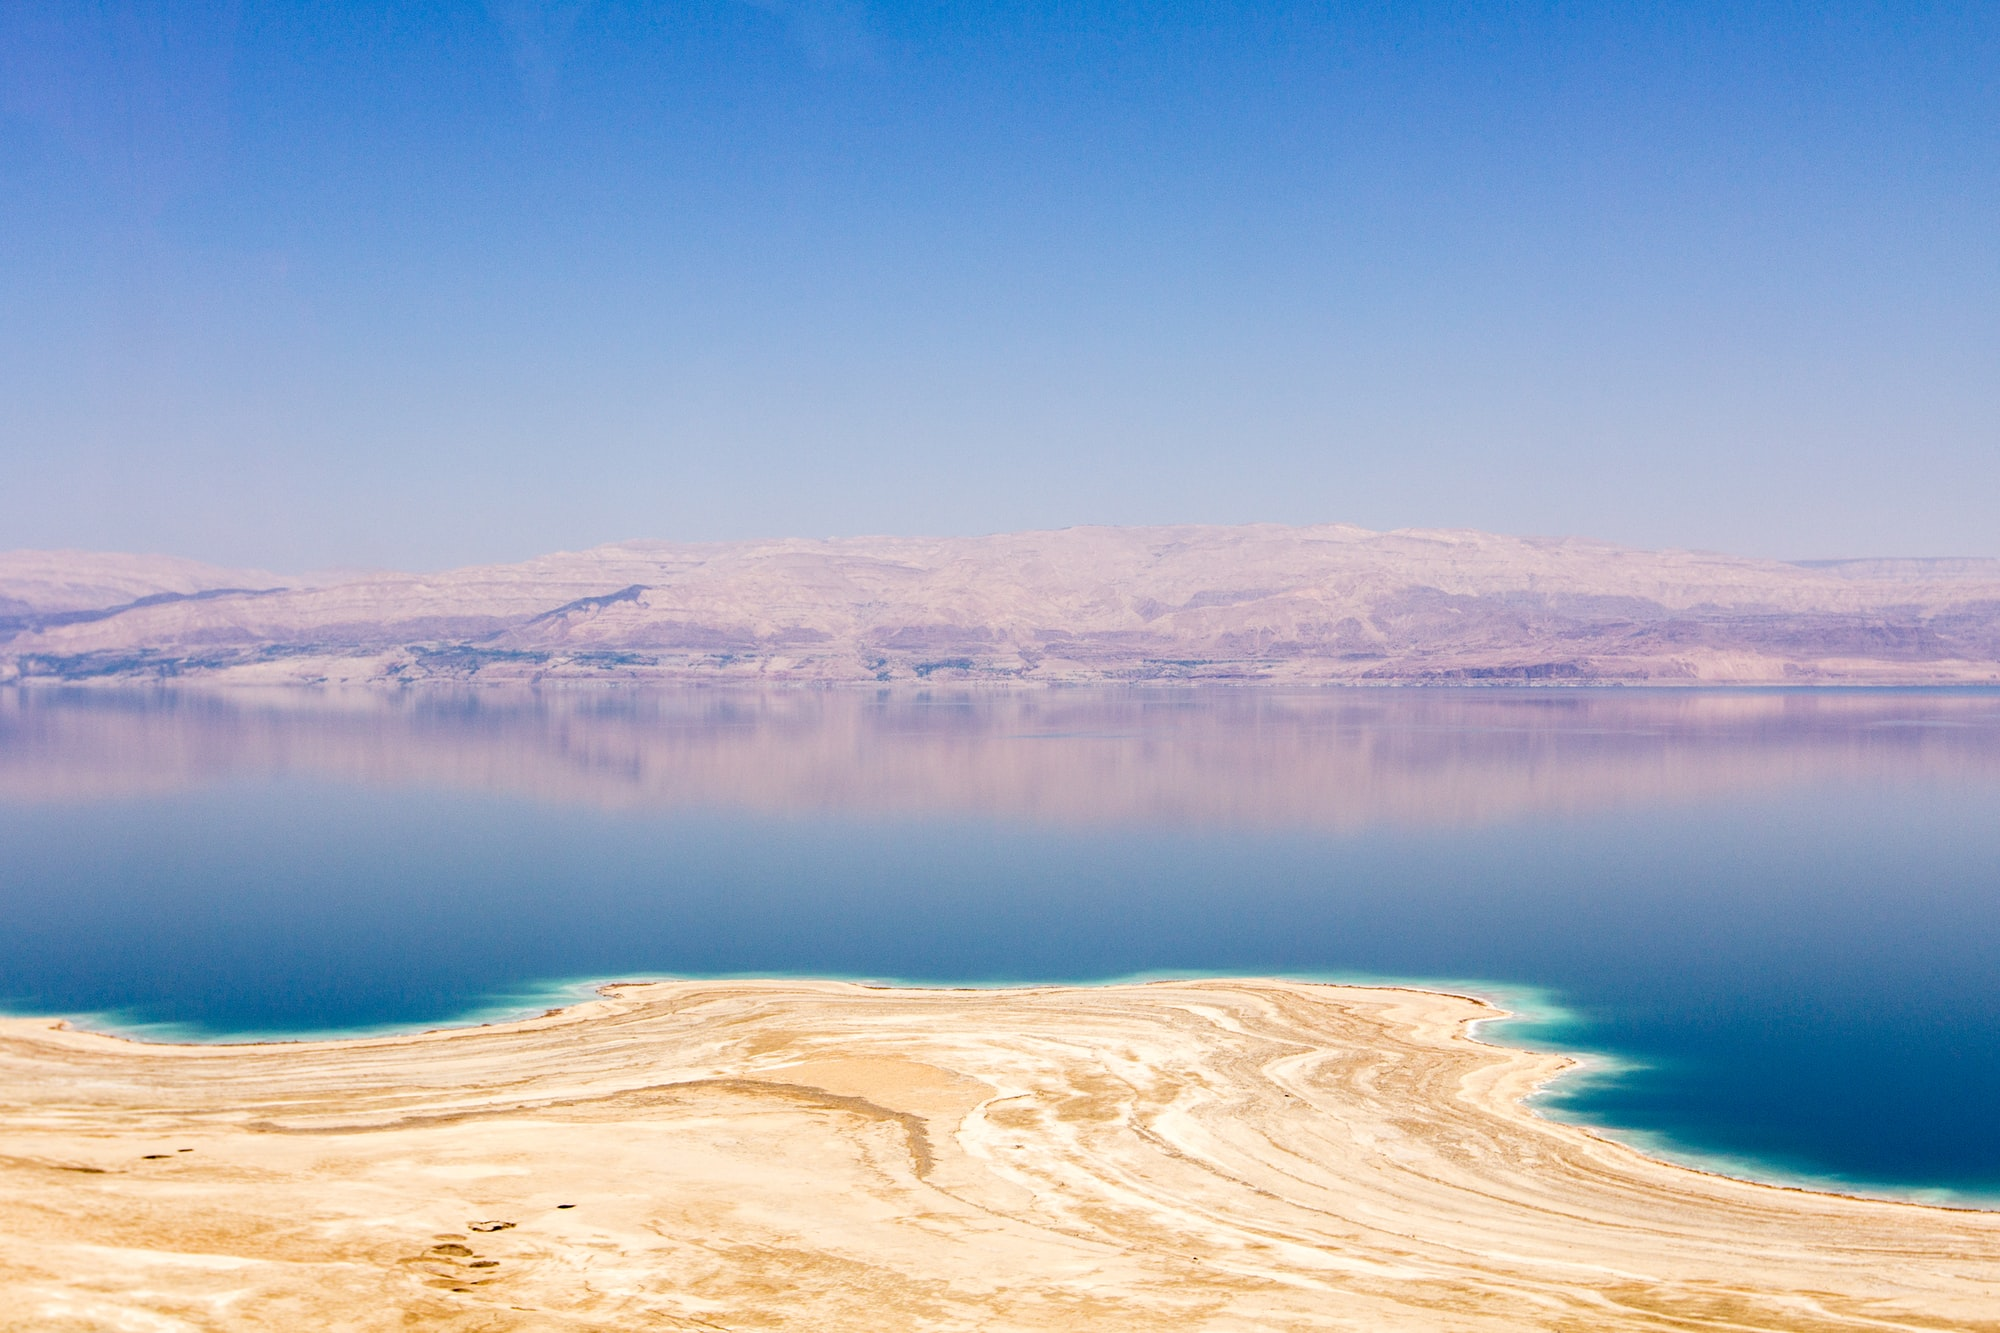 It's beautiful, this is my first trip to Israel, and Dead-sea is such amazing place. 